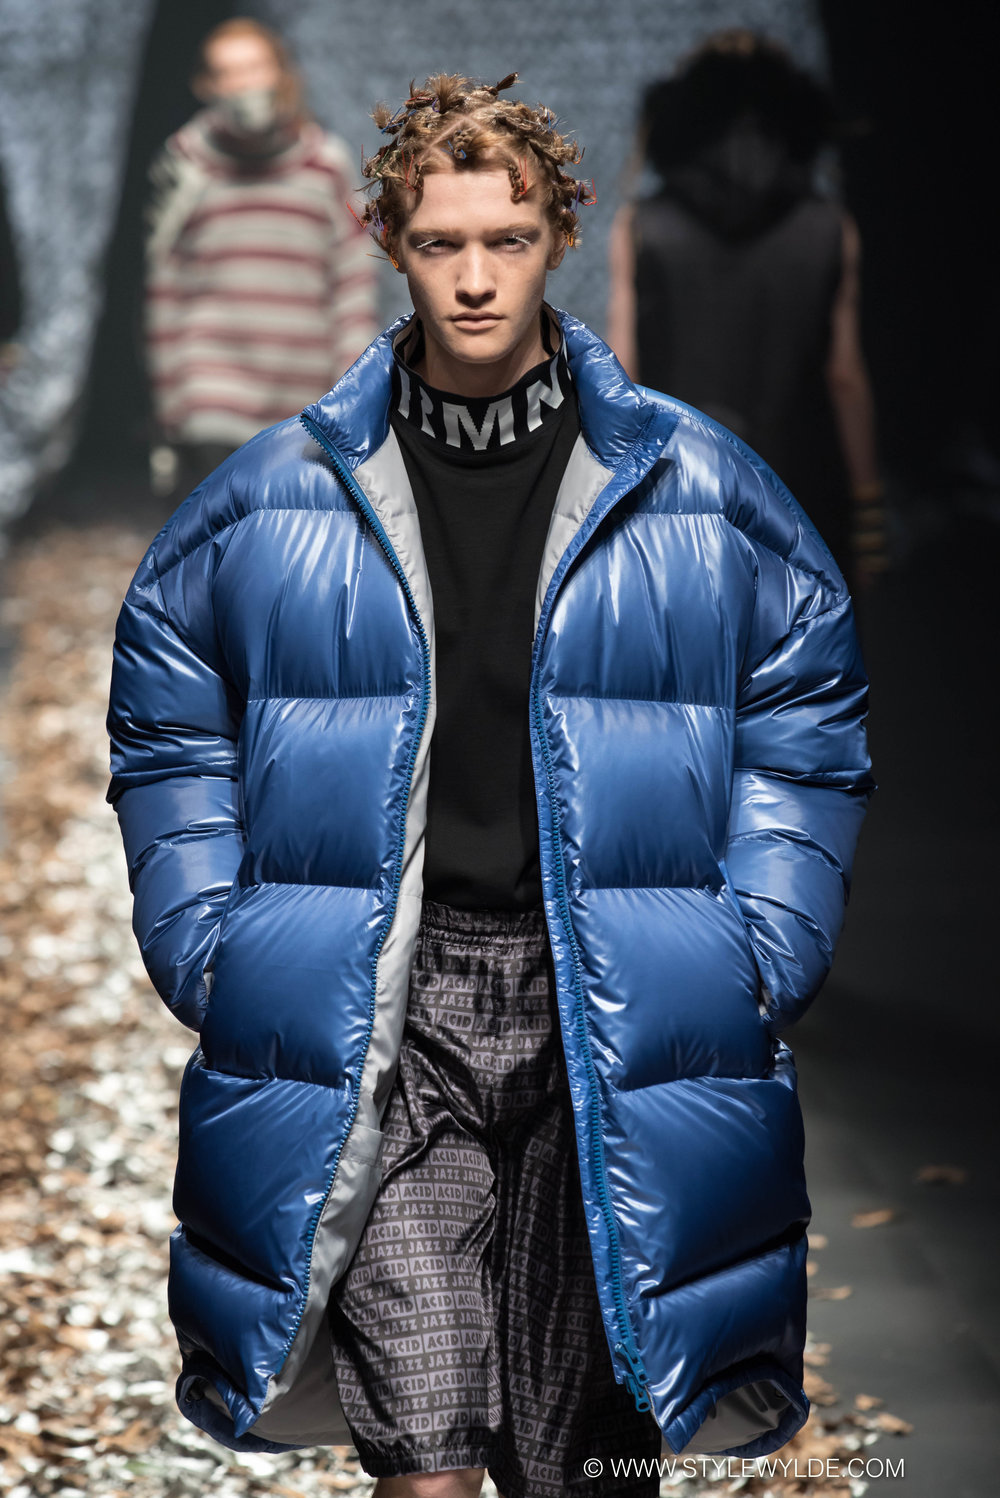 stylewylde-Discovered AW17-11.jpg